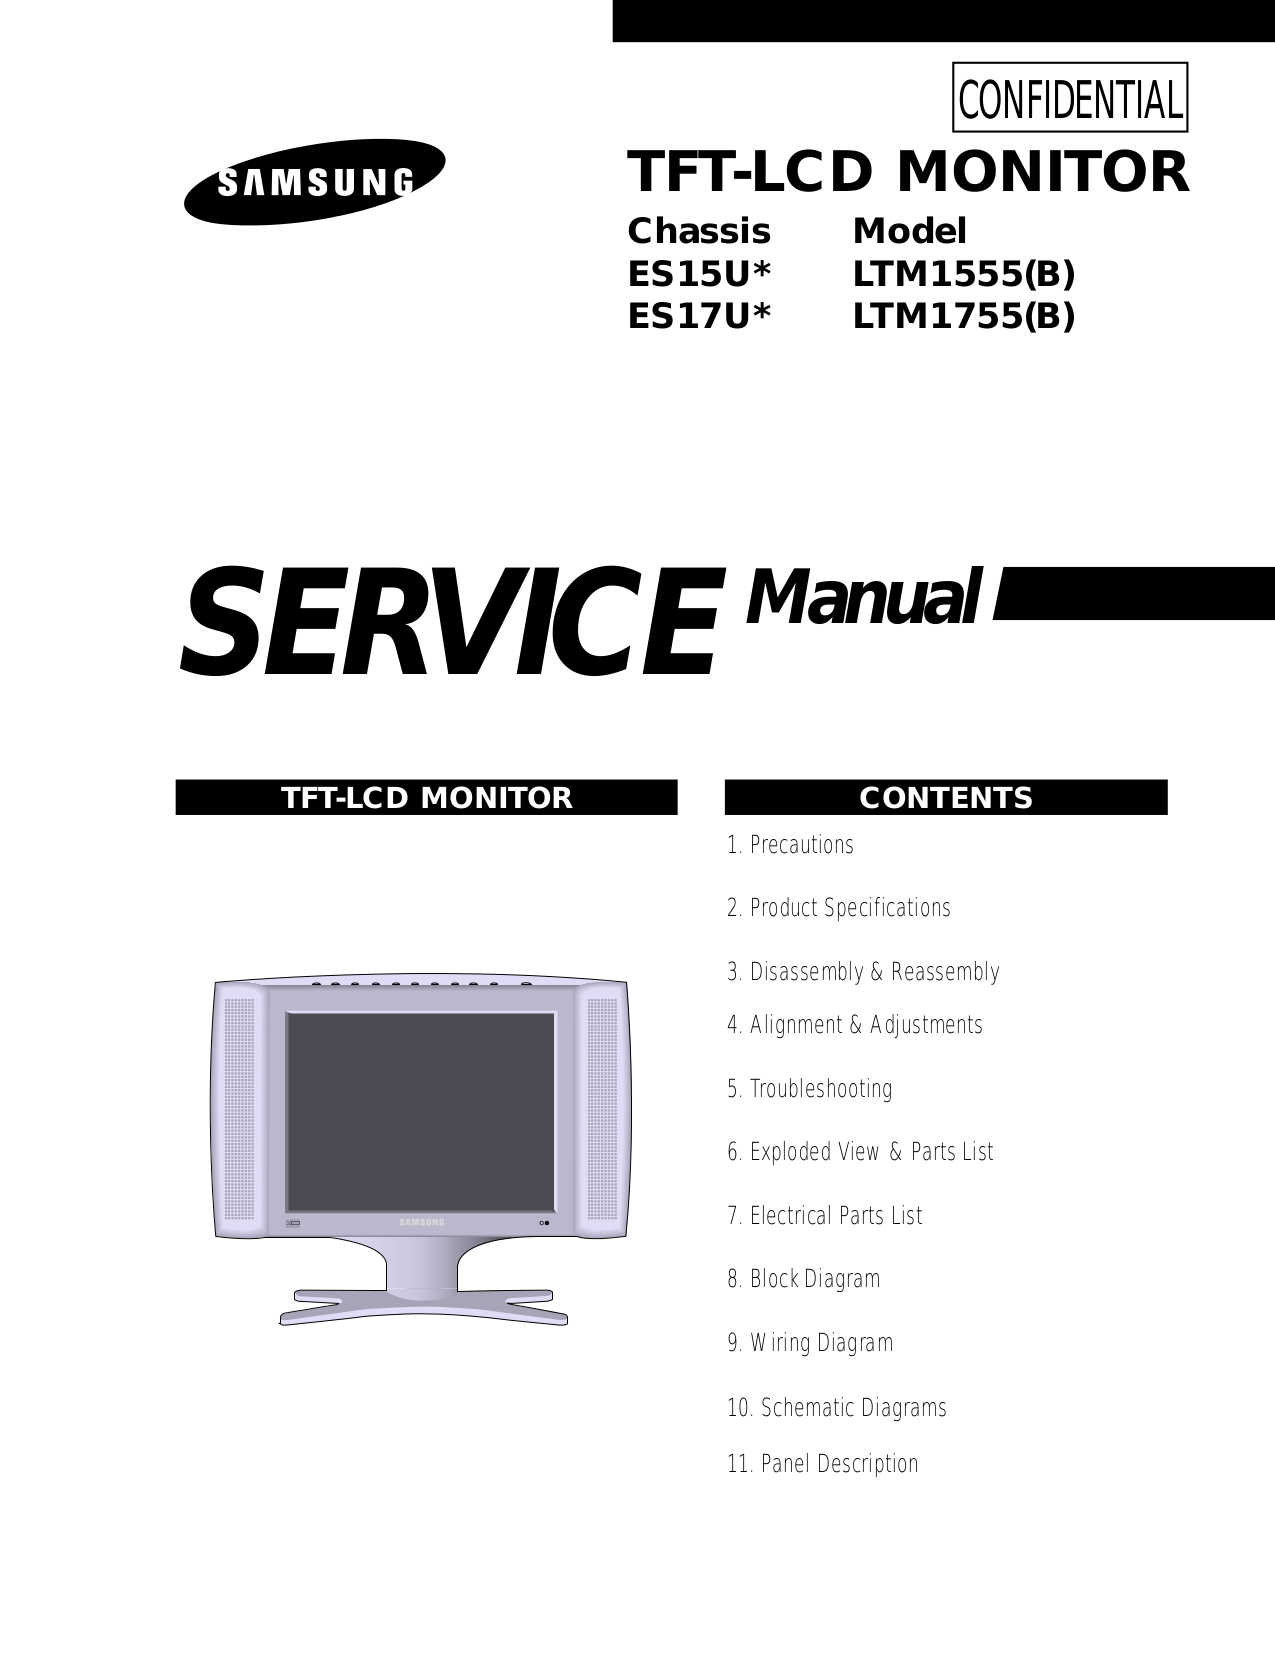 Samsung Television Troubleshooting House And Lcd Tv Schematic Diagram On Plasma For Lt M1755 Manual